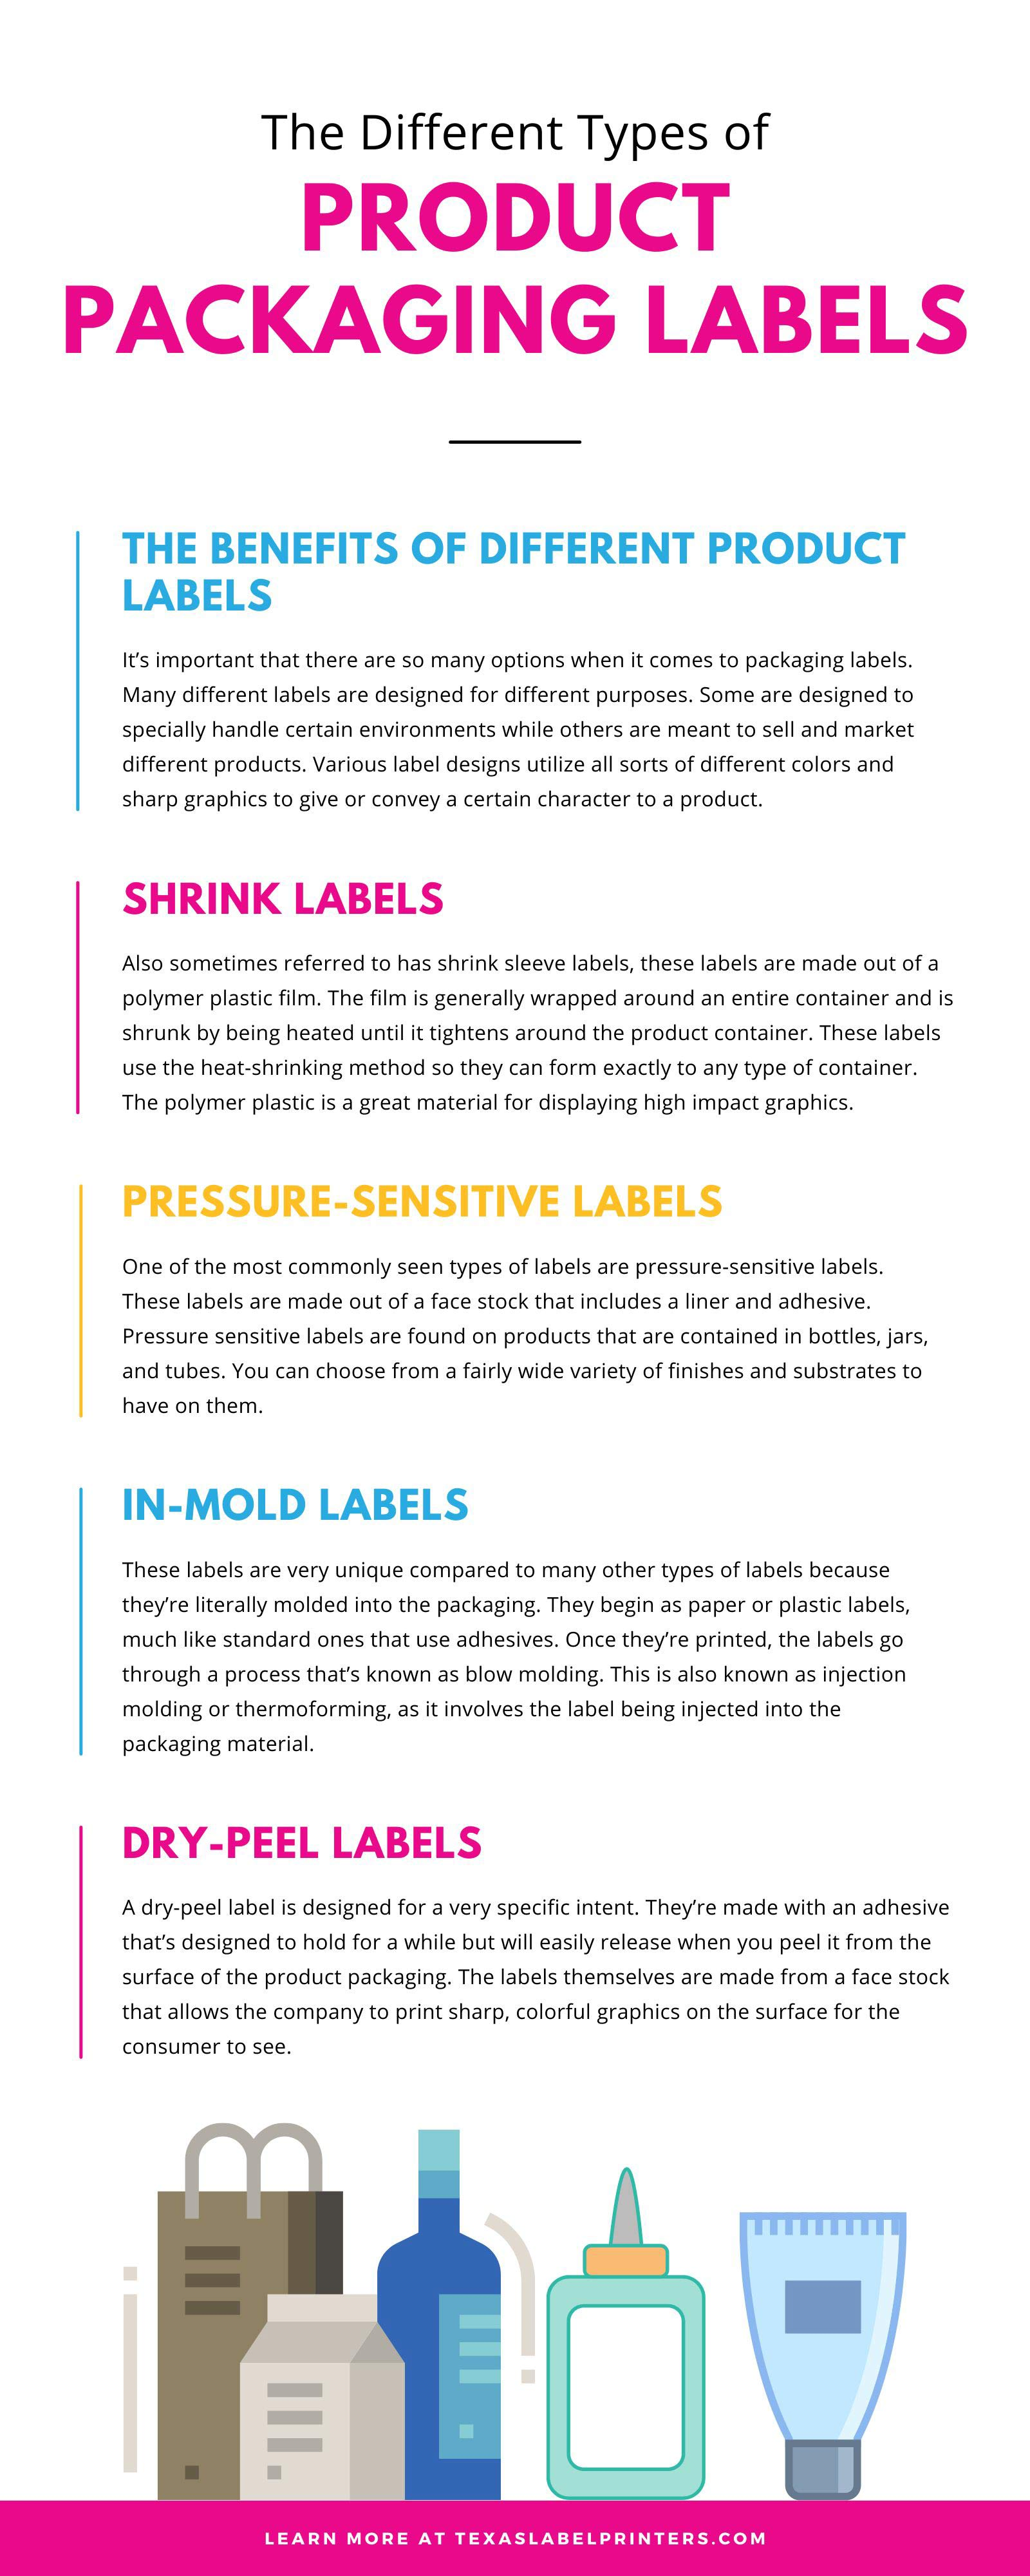 The Different Types of Product Packaging Labels Infographic